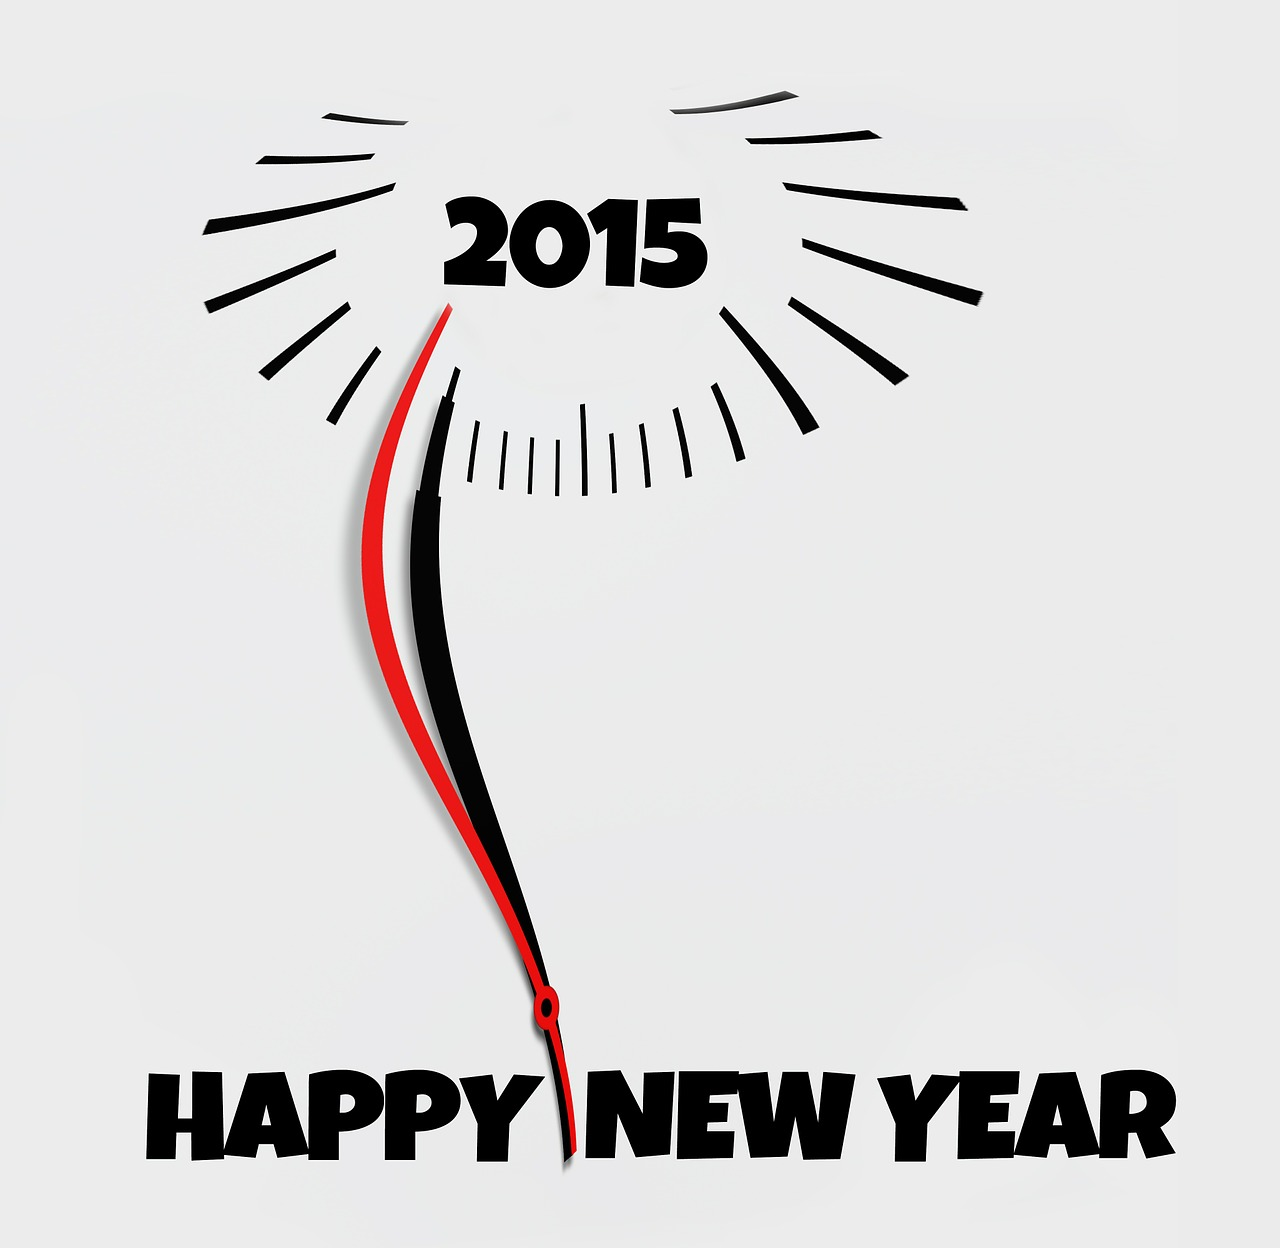 sylvester new year's day 2015 free photo